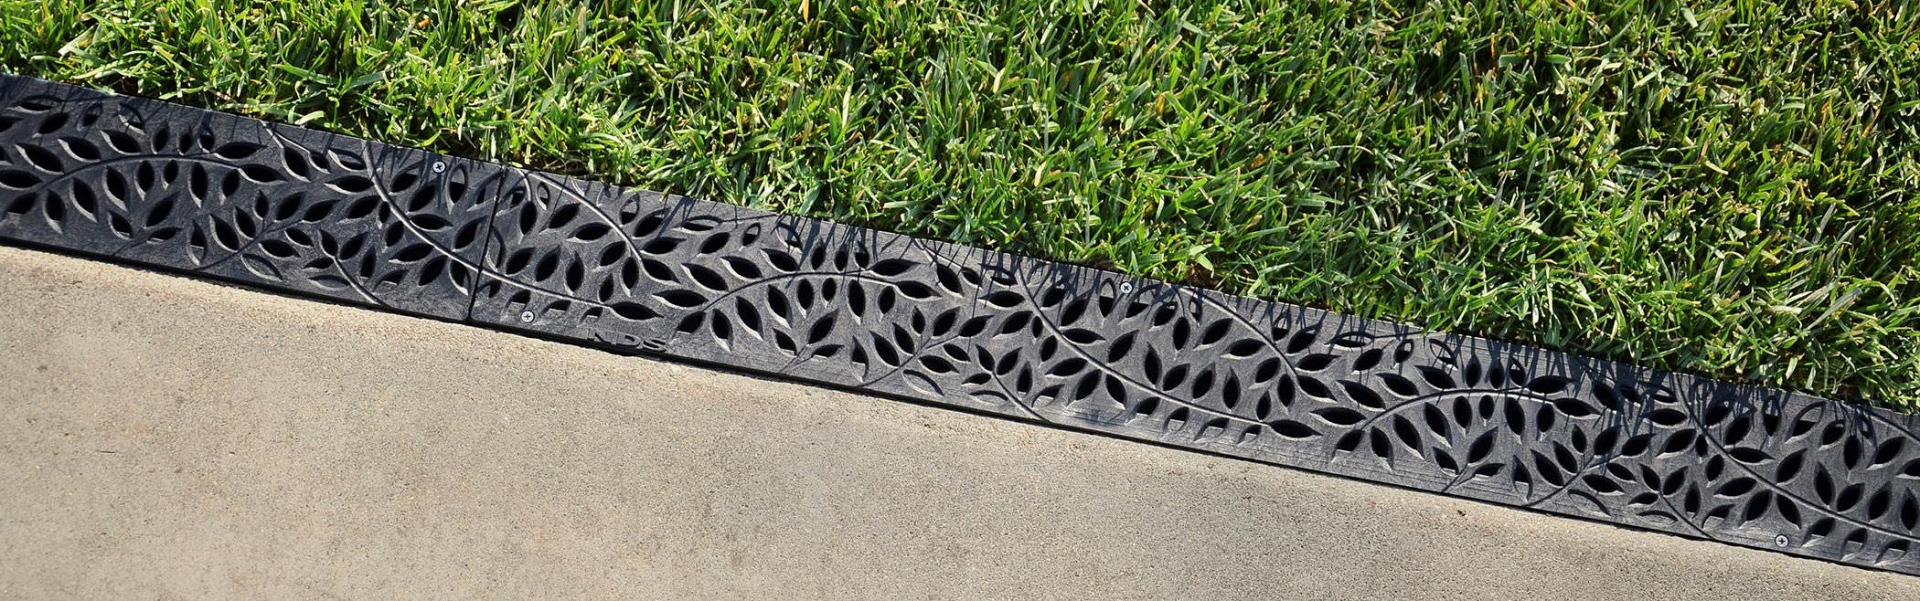 Residential Drainage Products Aquarius Supply